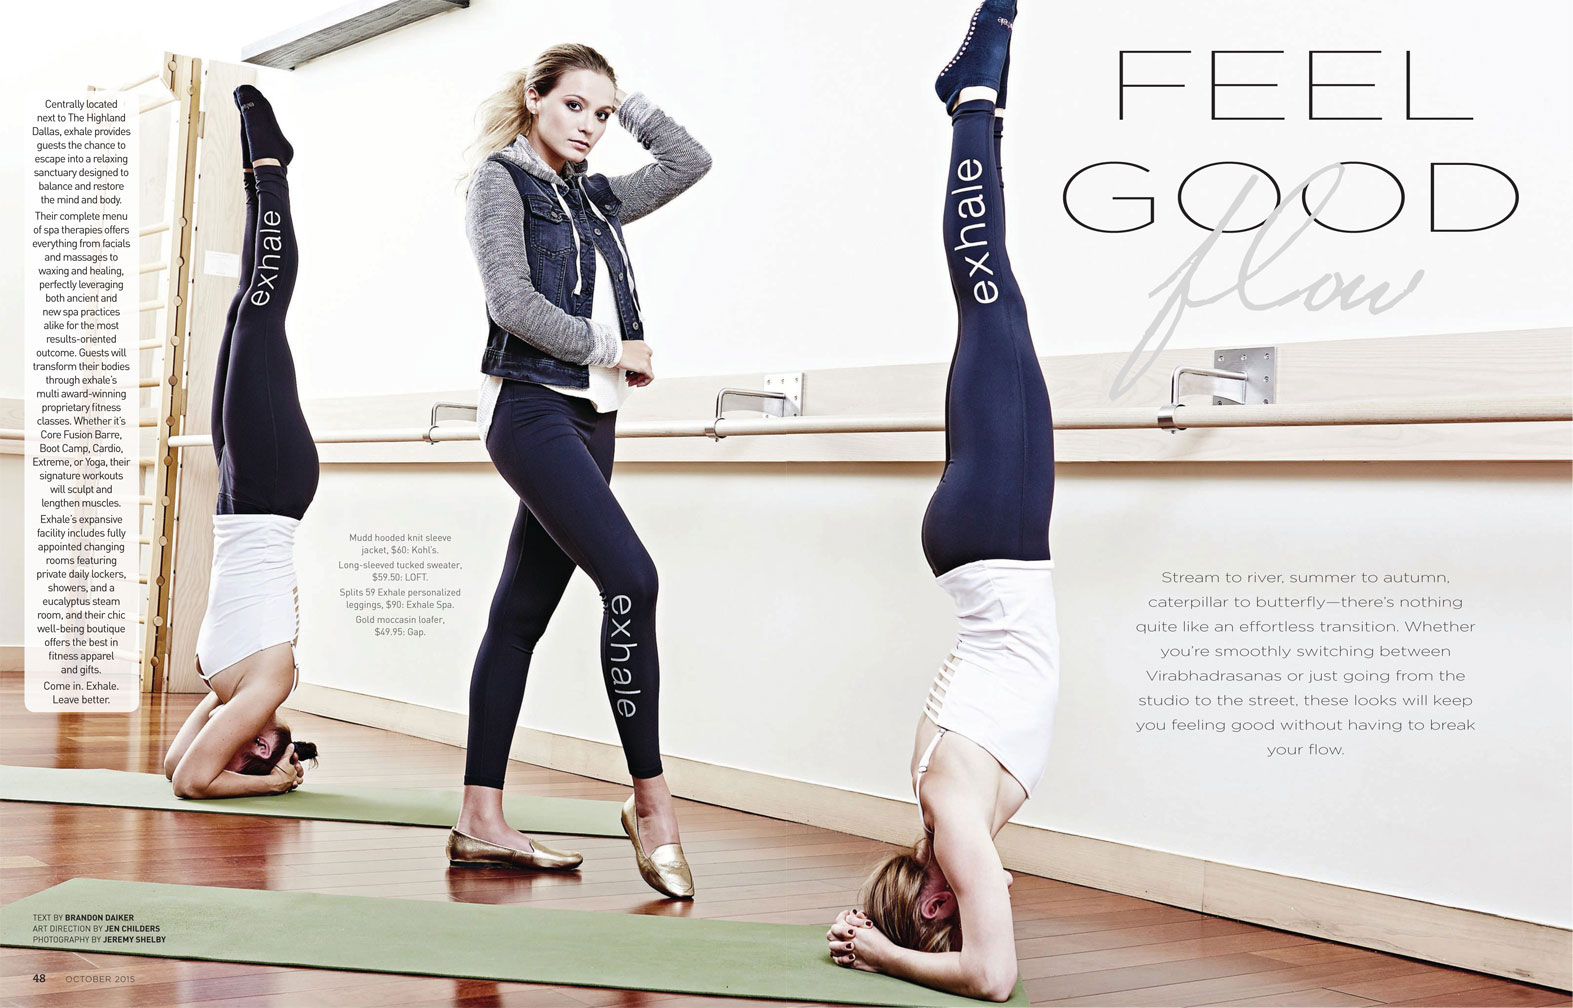 LivingMag-Feelgoodflow-Oct2015